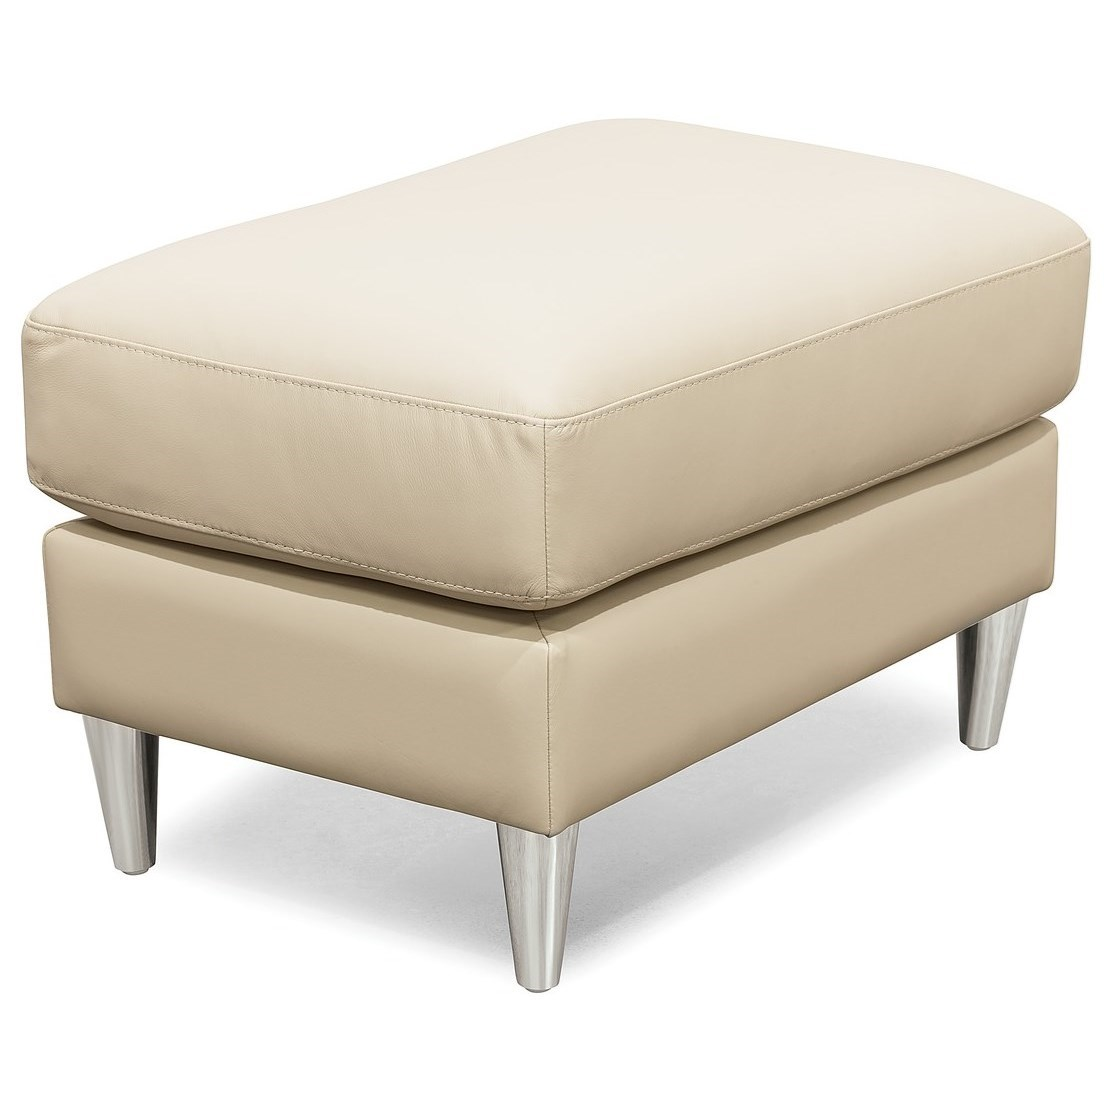 Atticus Ottoman by Palliser at Jacksonville Furniture Mart